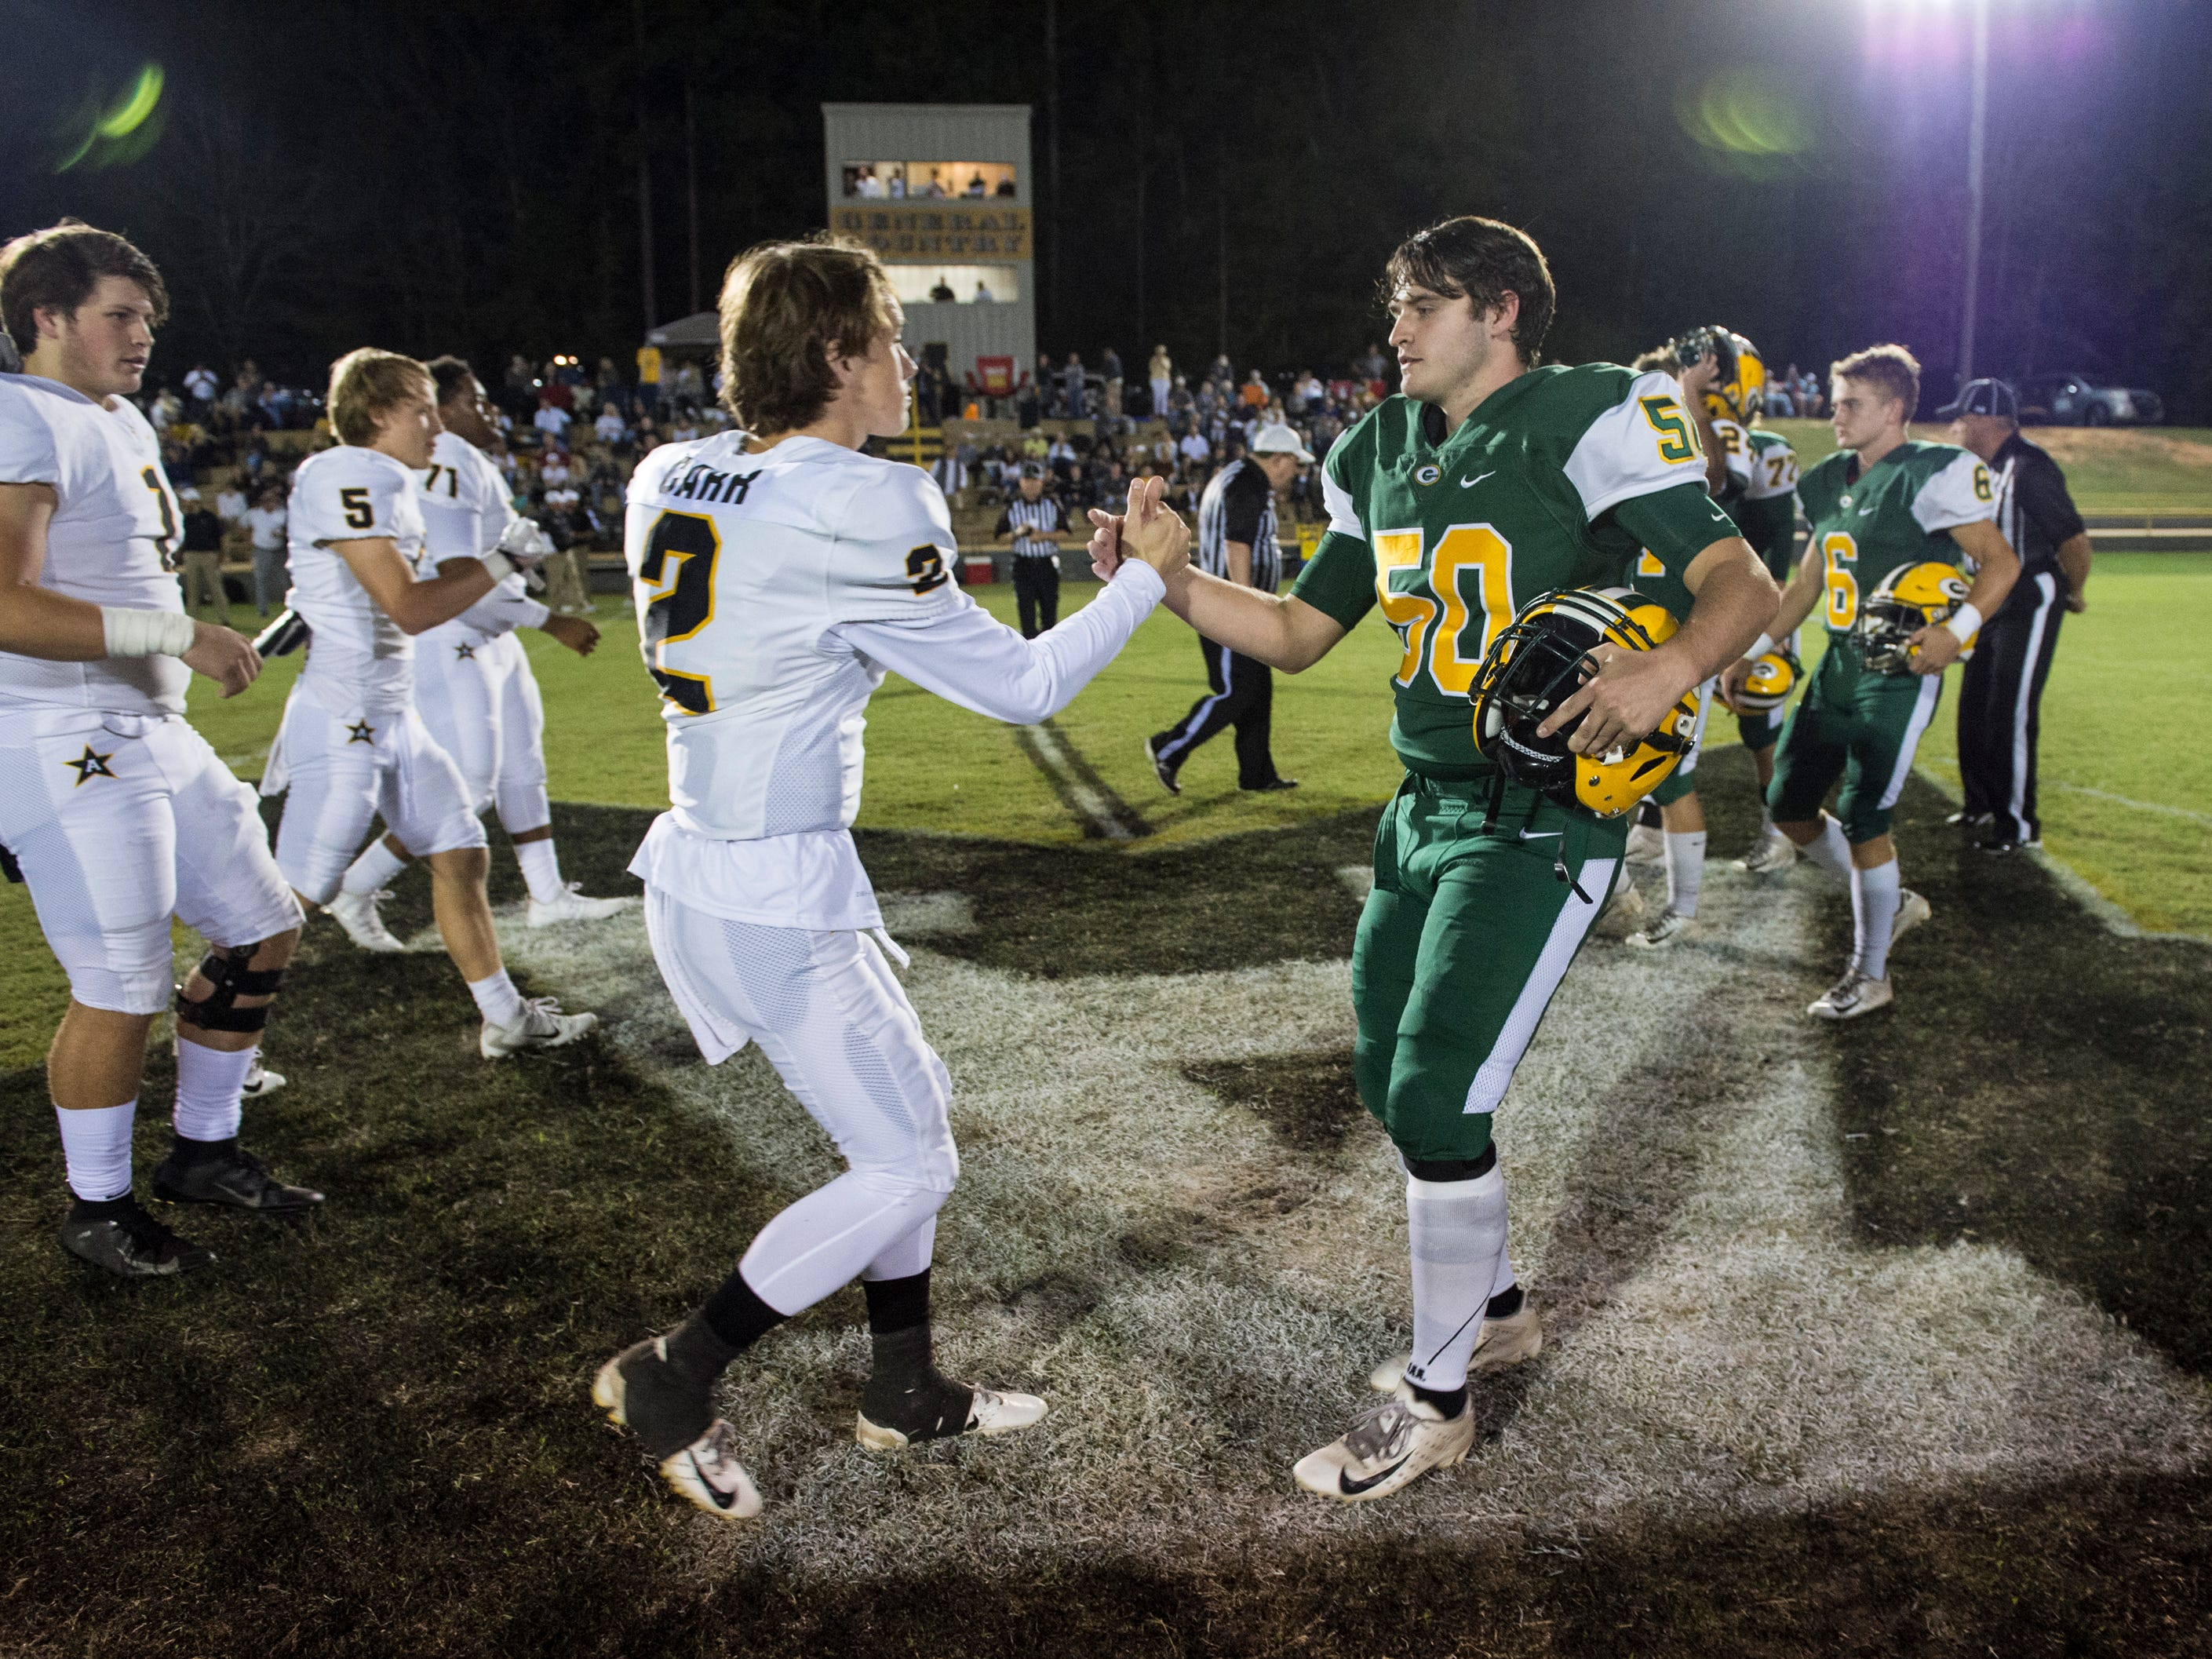 Team captains from Edgewood and Autauga shake hands at midfield after the coin toss at Autauga Academy in Prattville, Ala., on Thursday, Oct. 18, 2018.